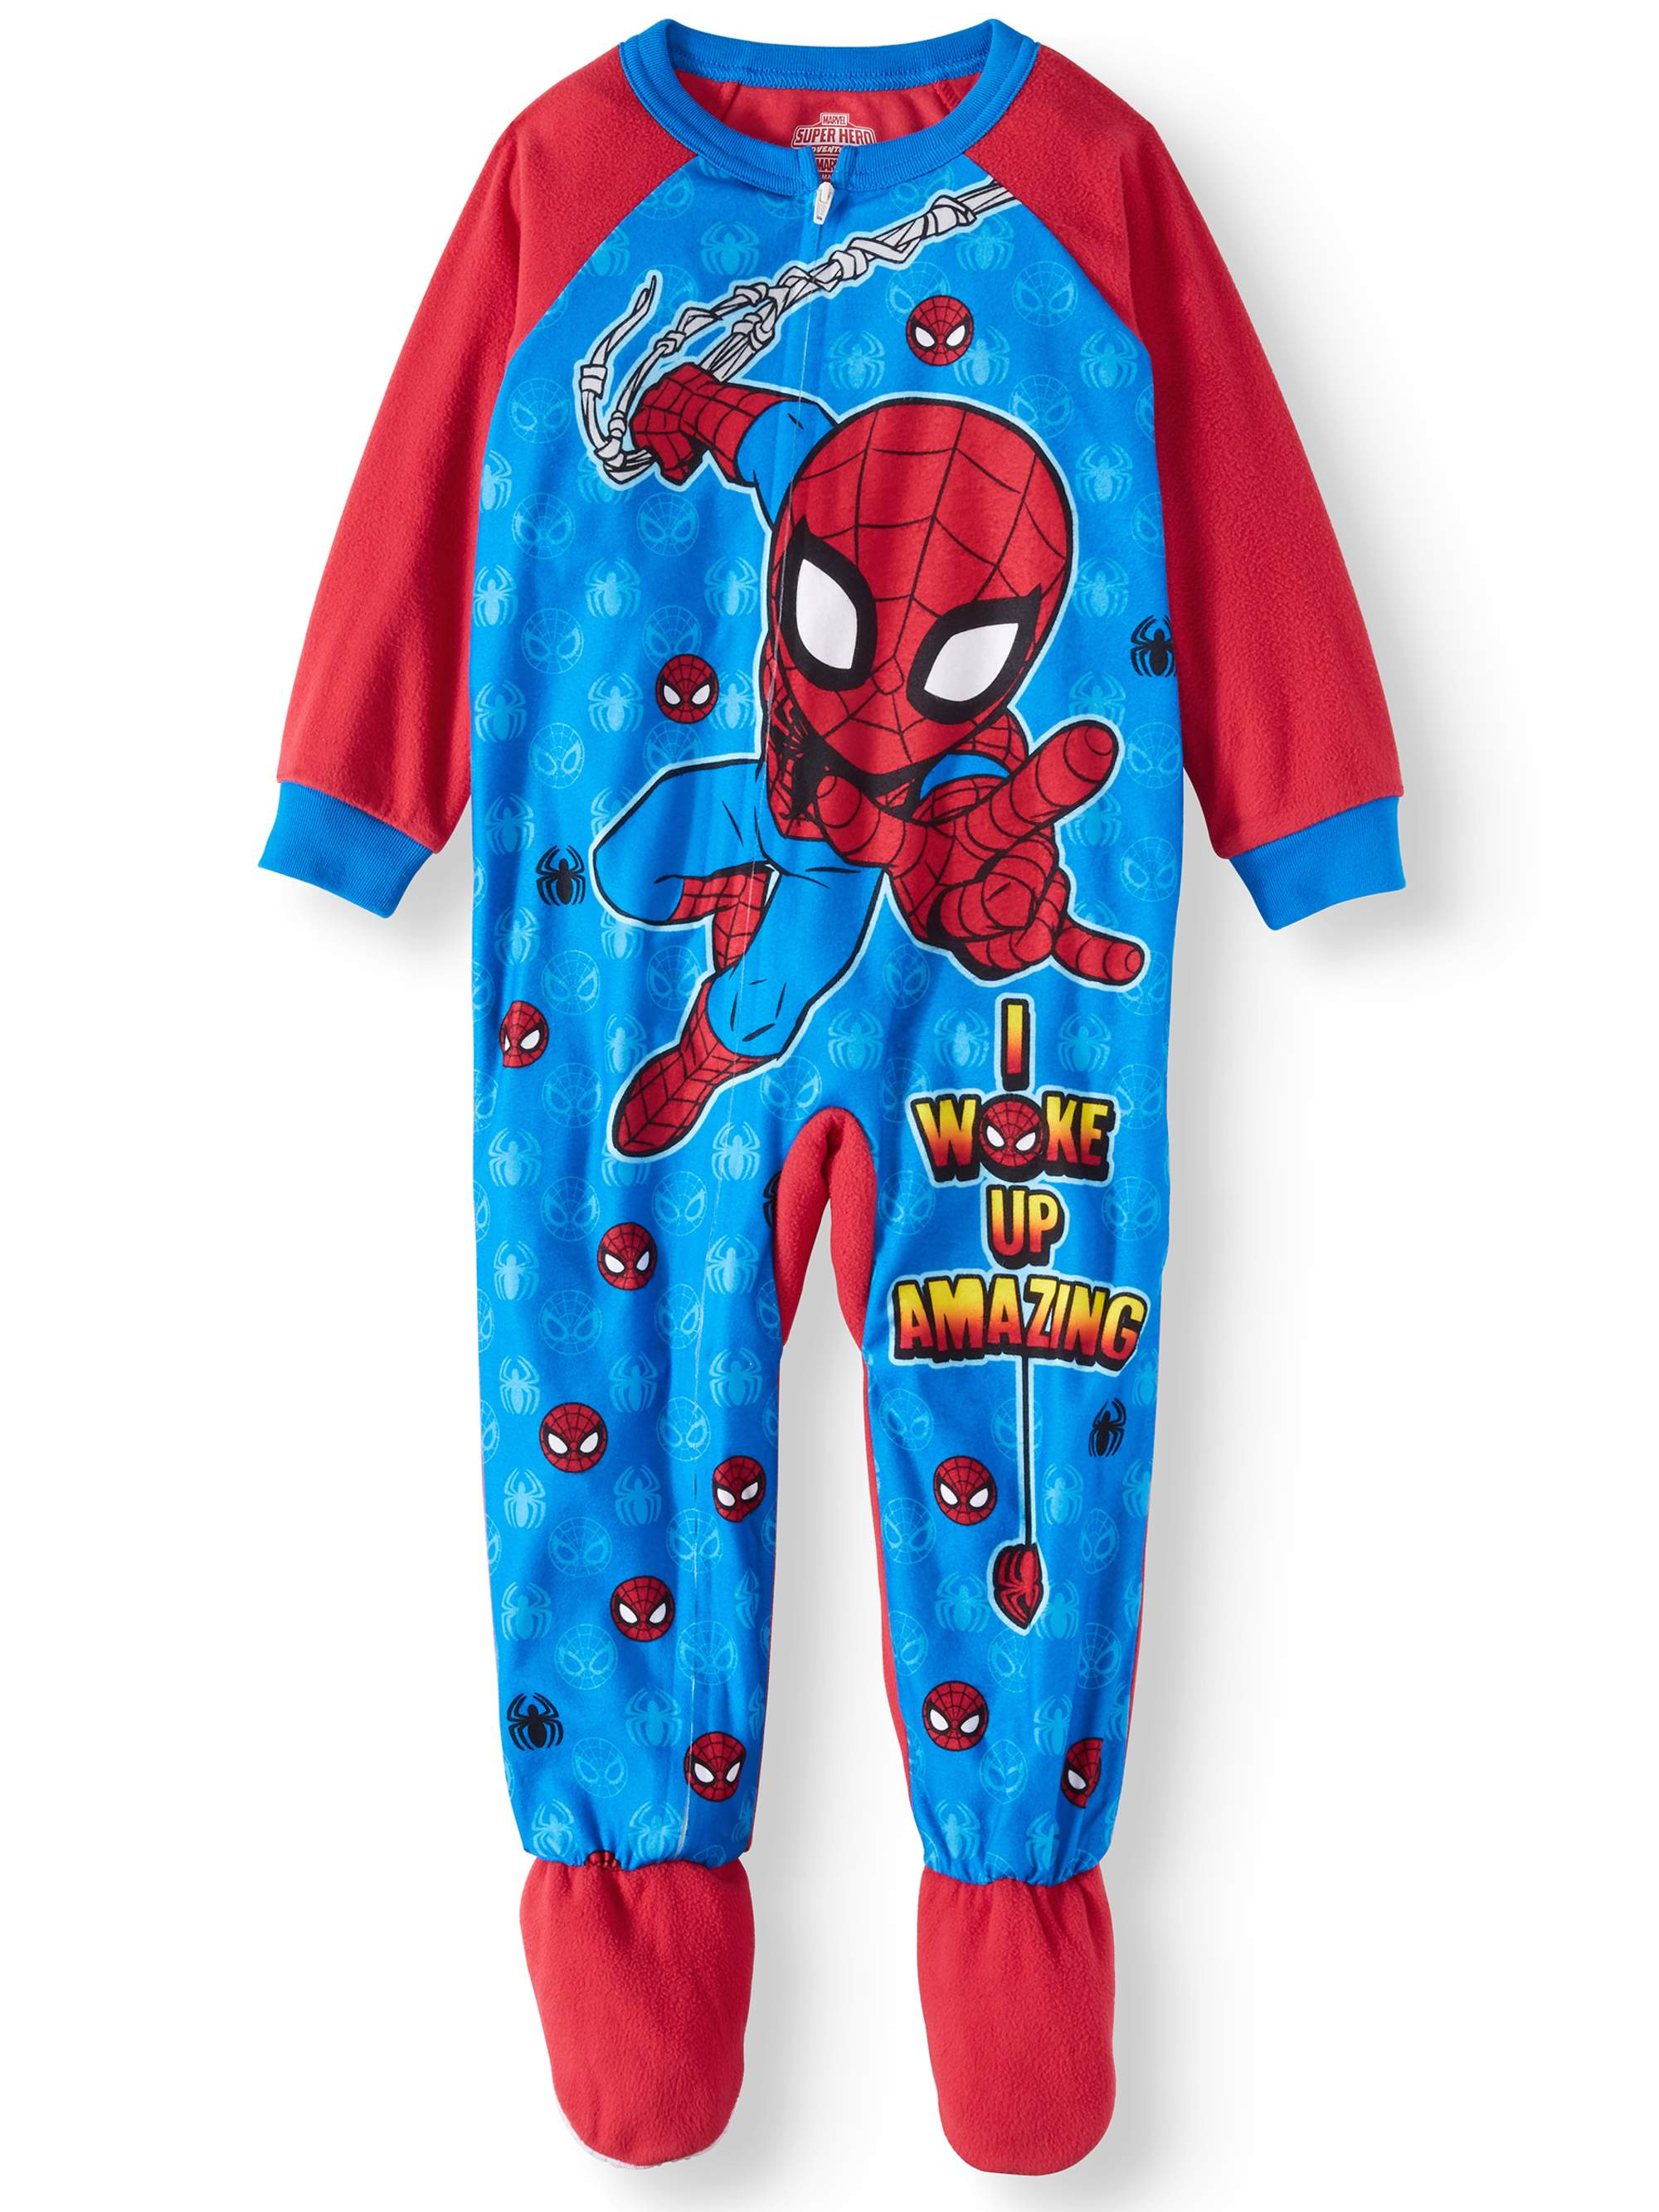 Spider-Man Toddler Boys' Microfleece Footed Blanket Sleeper